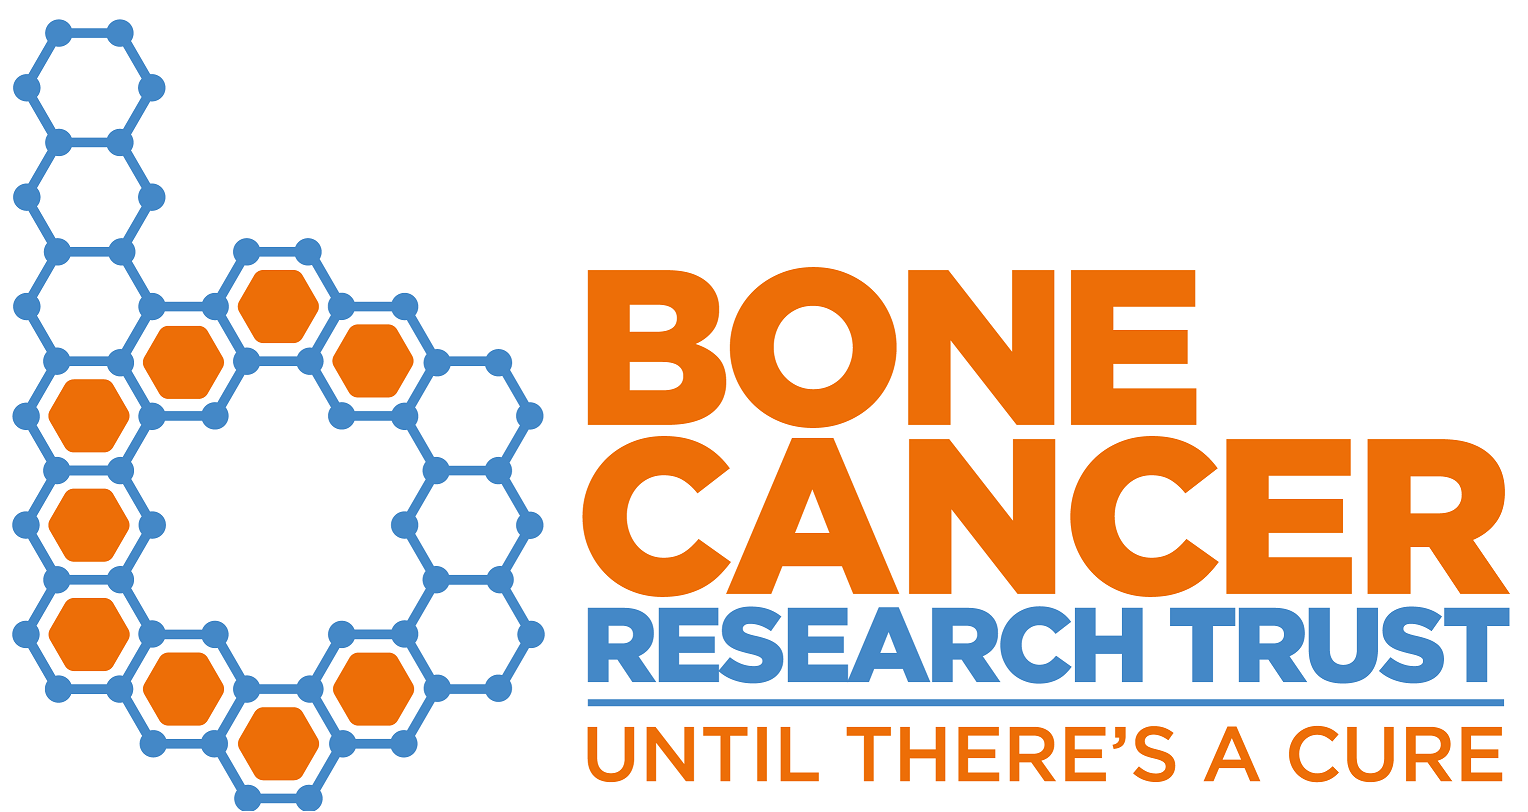 Bone Cancer Research Trust's logo takes you to their list of jobs